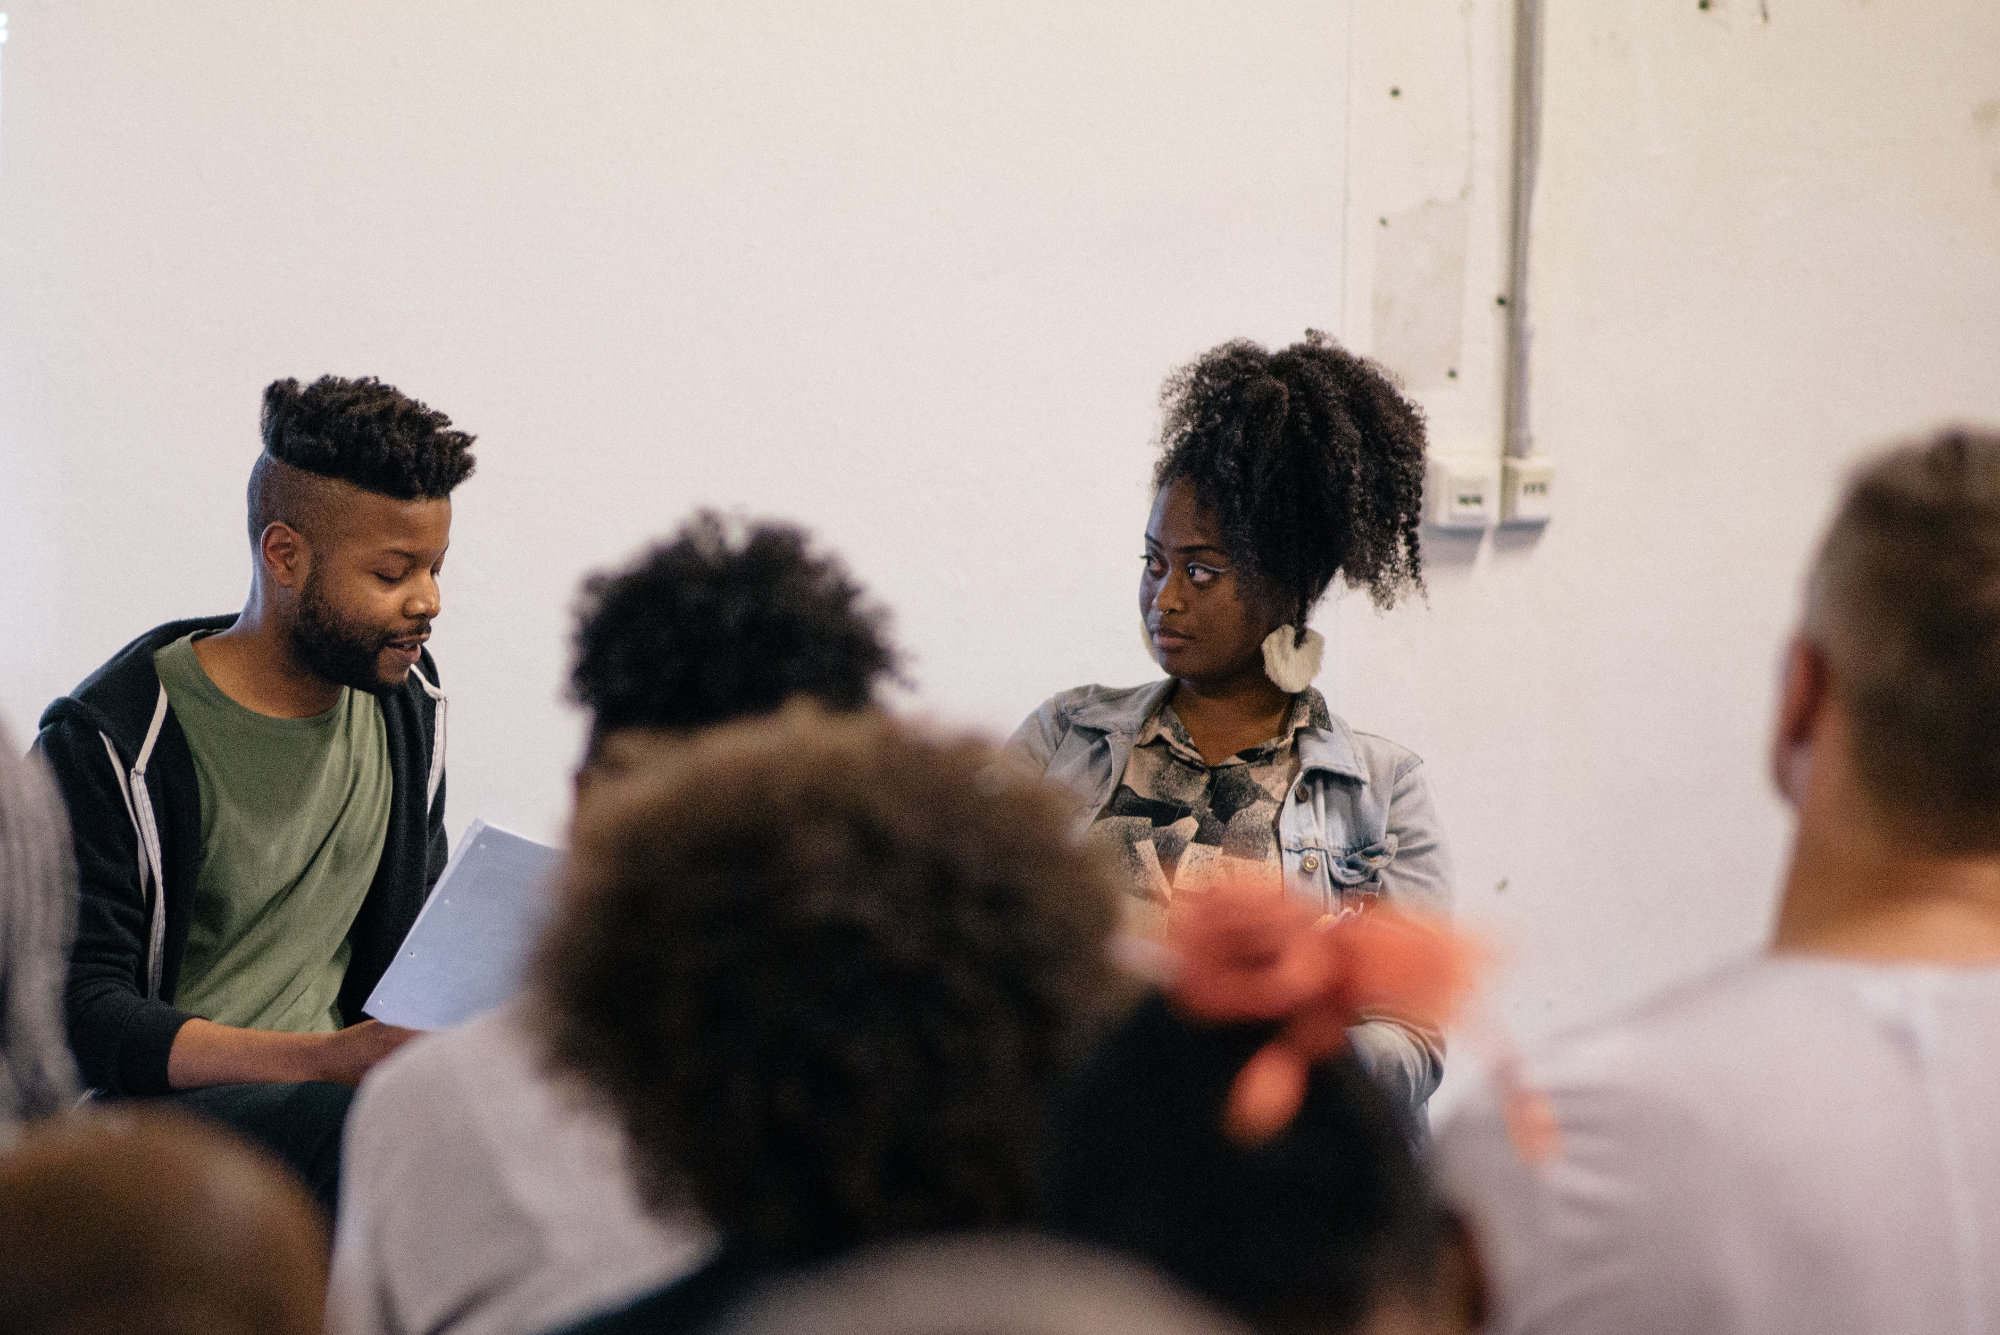 <p><b>How Do We Survive Spaces We Were Never Meant To Enter?<br /> </b><strong>Discussion</strong> with Isaiah Lopaz (artist/writer) and Rachael Moore (activist/performer/community organiser)</p> <p>With a sense of urgency, activist Rachael Moore and artist Isaiah Lopaz engaged in an open discussion which highlighted some of the more challenging experiences that People of Color face when working for art and cultural institutions including: unethical working conditions, tokenism, incidences of racial prejudice, and the significant absence of POC in the audience, and in the administration behind public and private institutions and organisations centered on art and culture. Photo by Michael Külker</p>